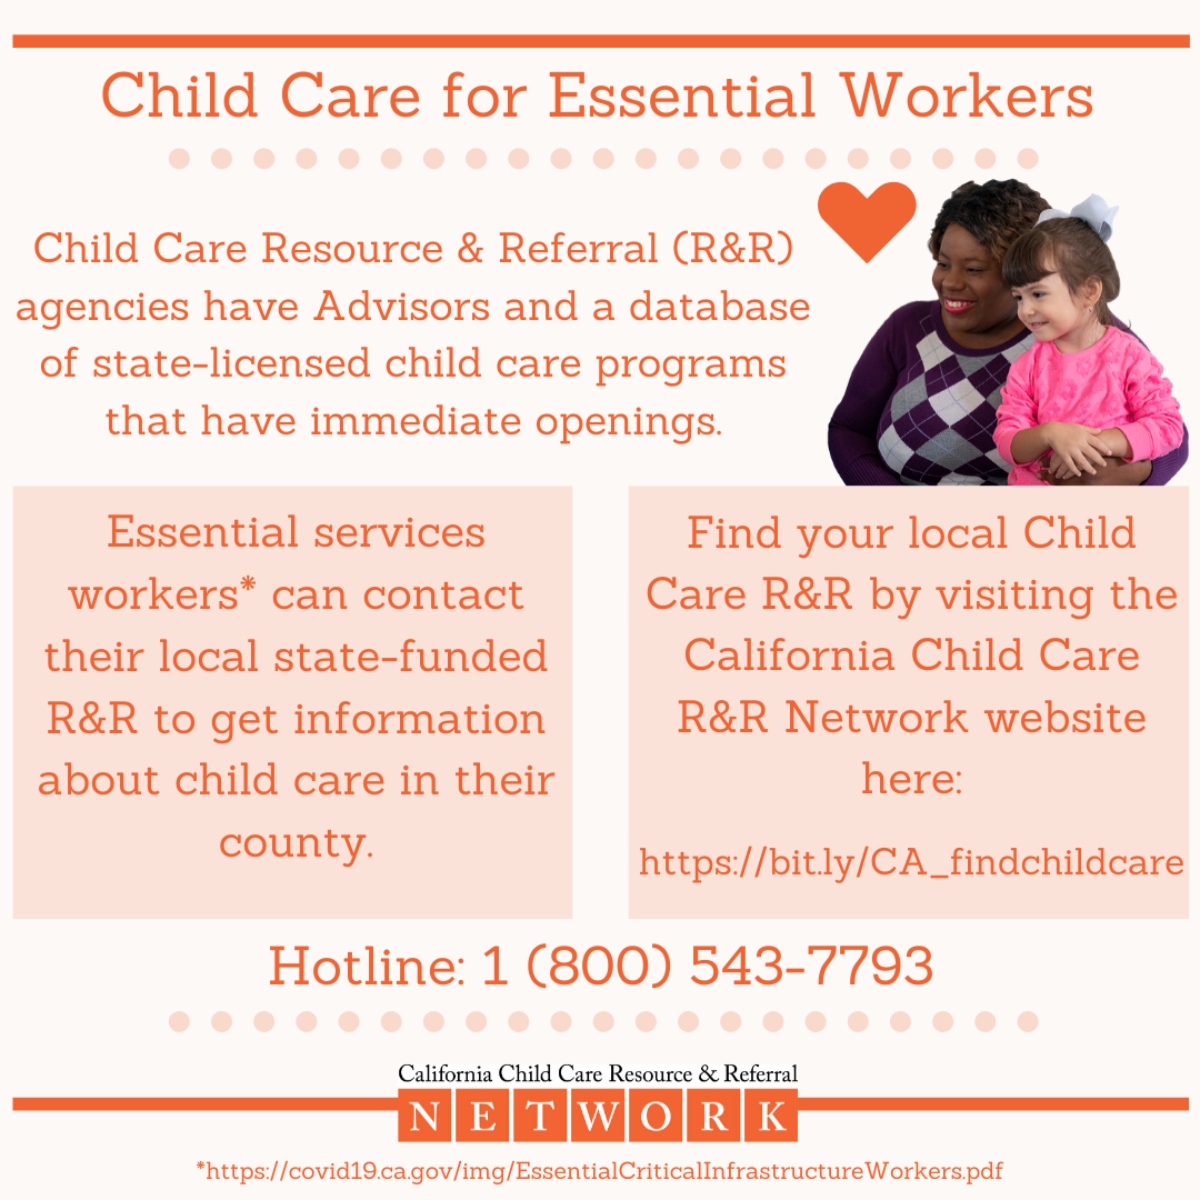 Child Care for Essential Workers | Hotline: 1(800)543-7793